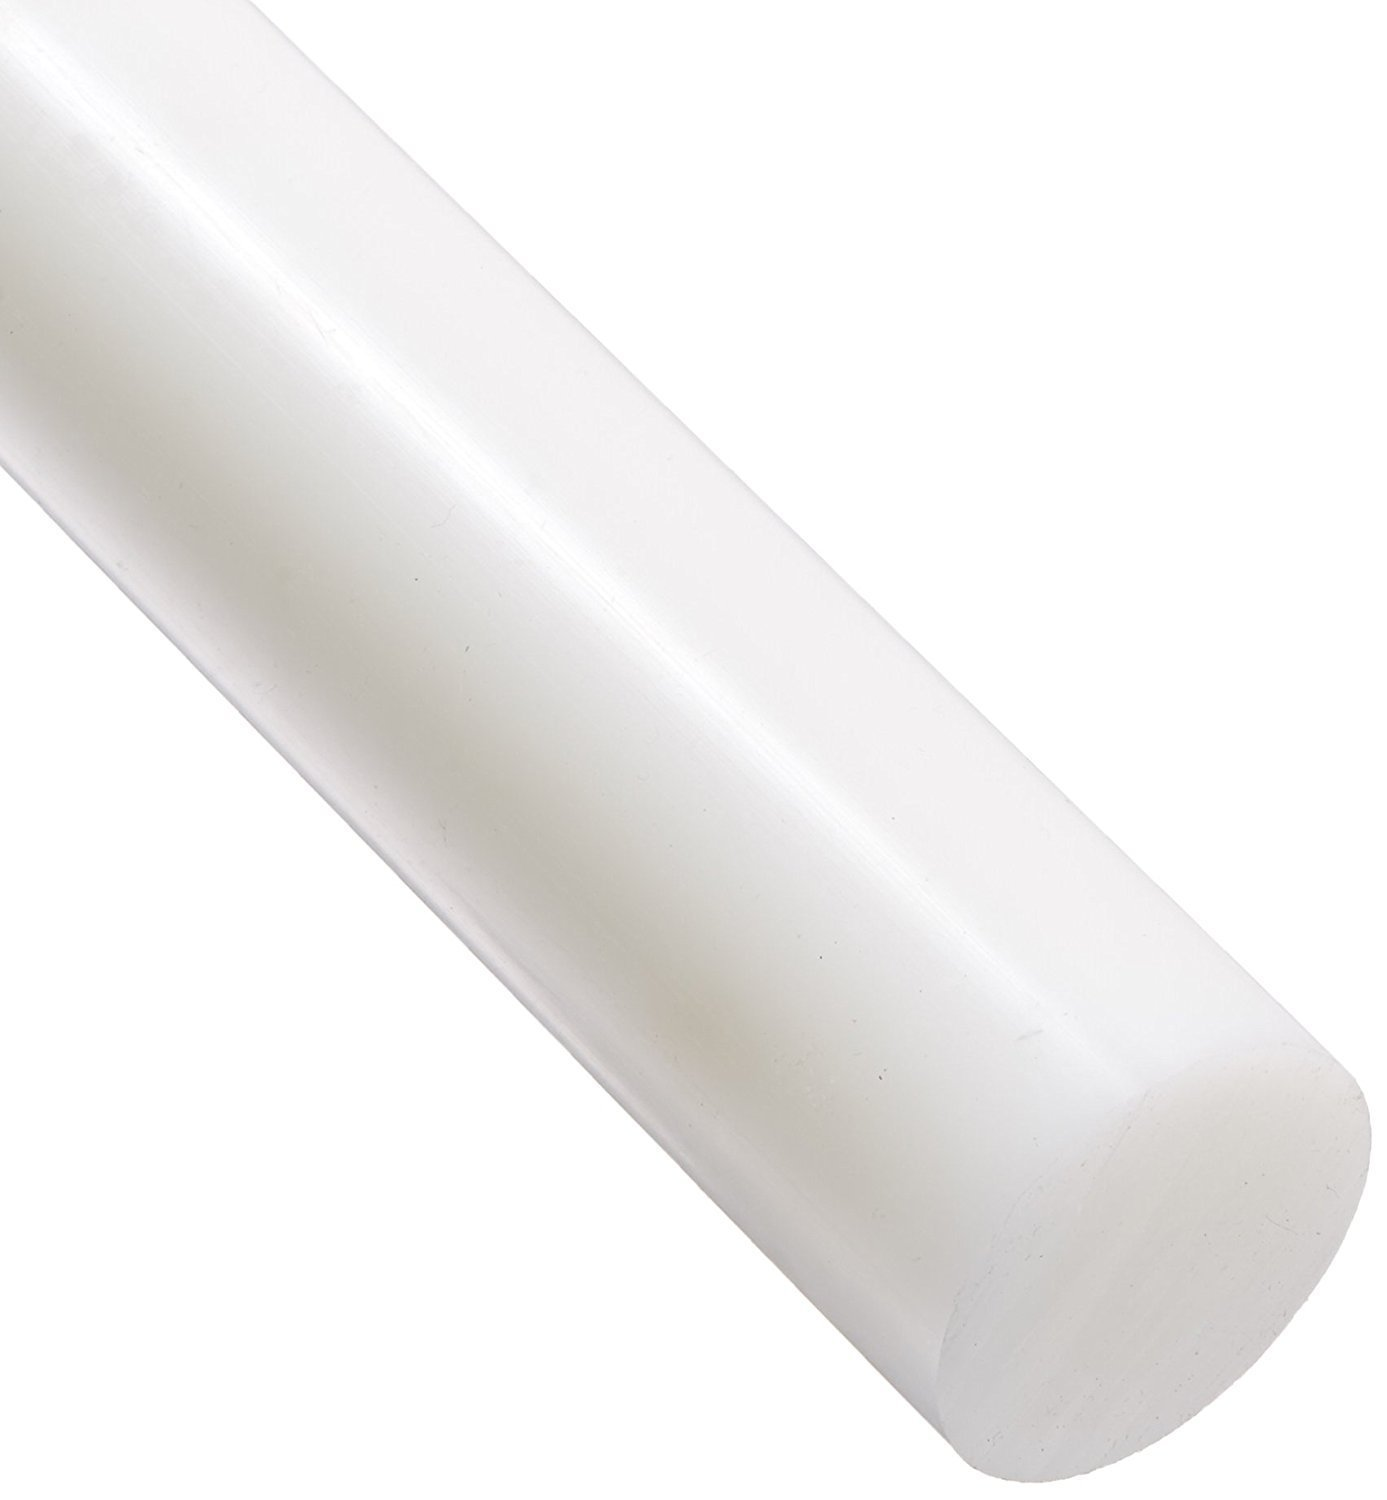 HDPE High Density Polyethylene Round Rod, Translucent White 30mm Diameter x 300mm Long Grade A PE 500 J&A Racing